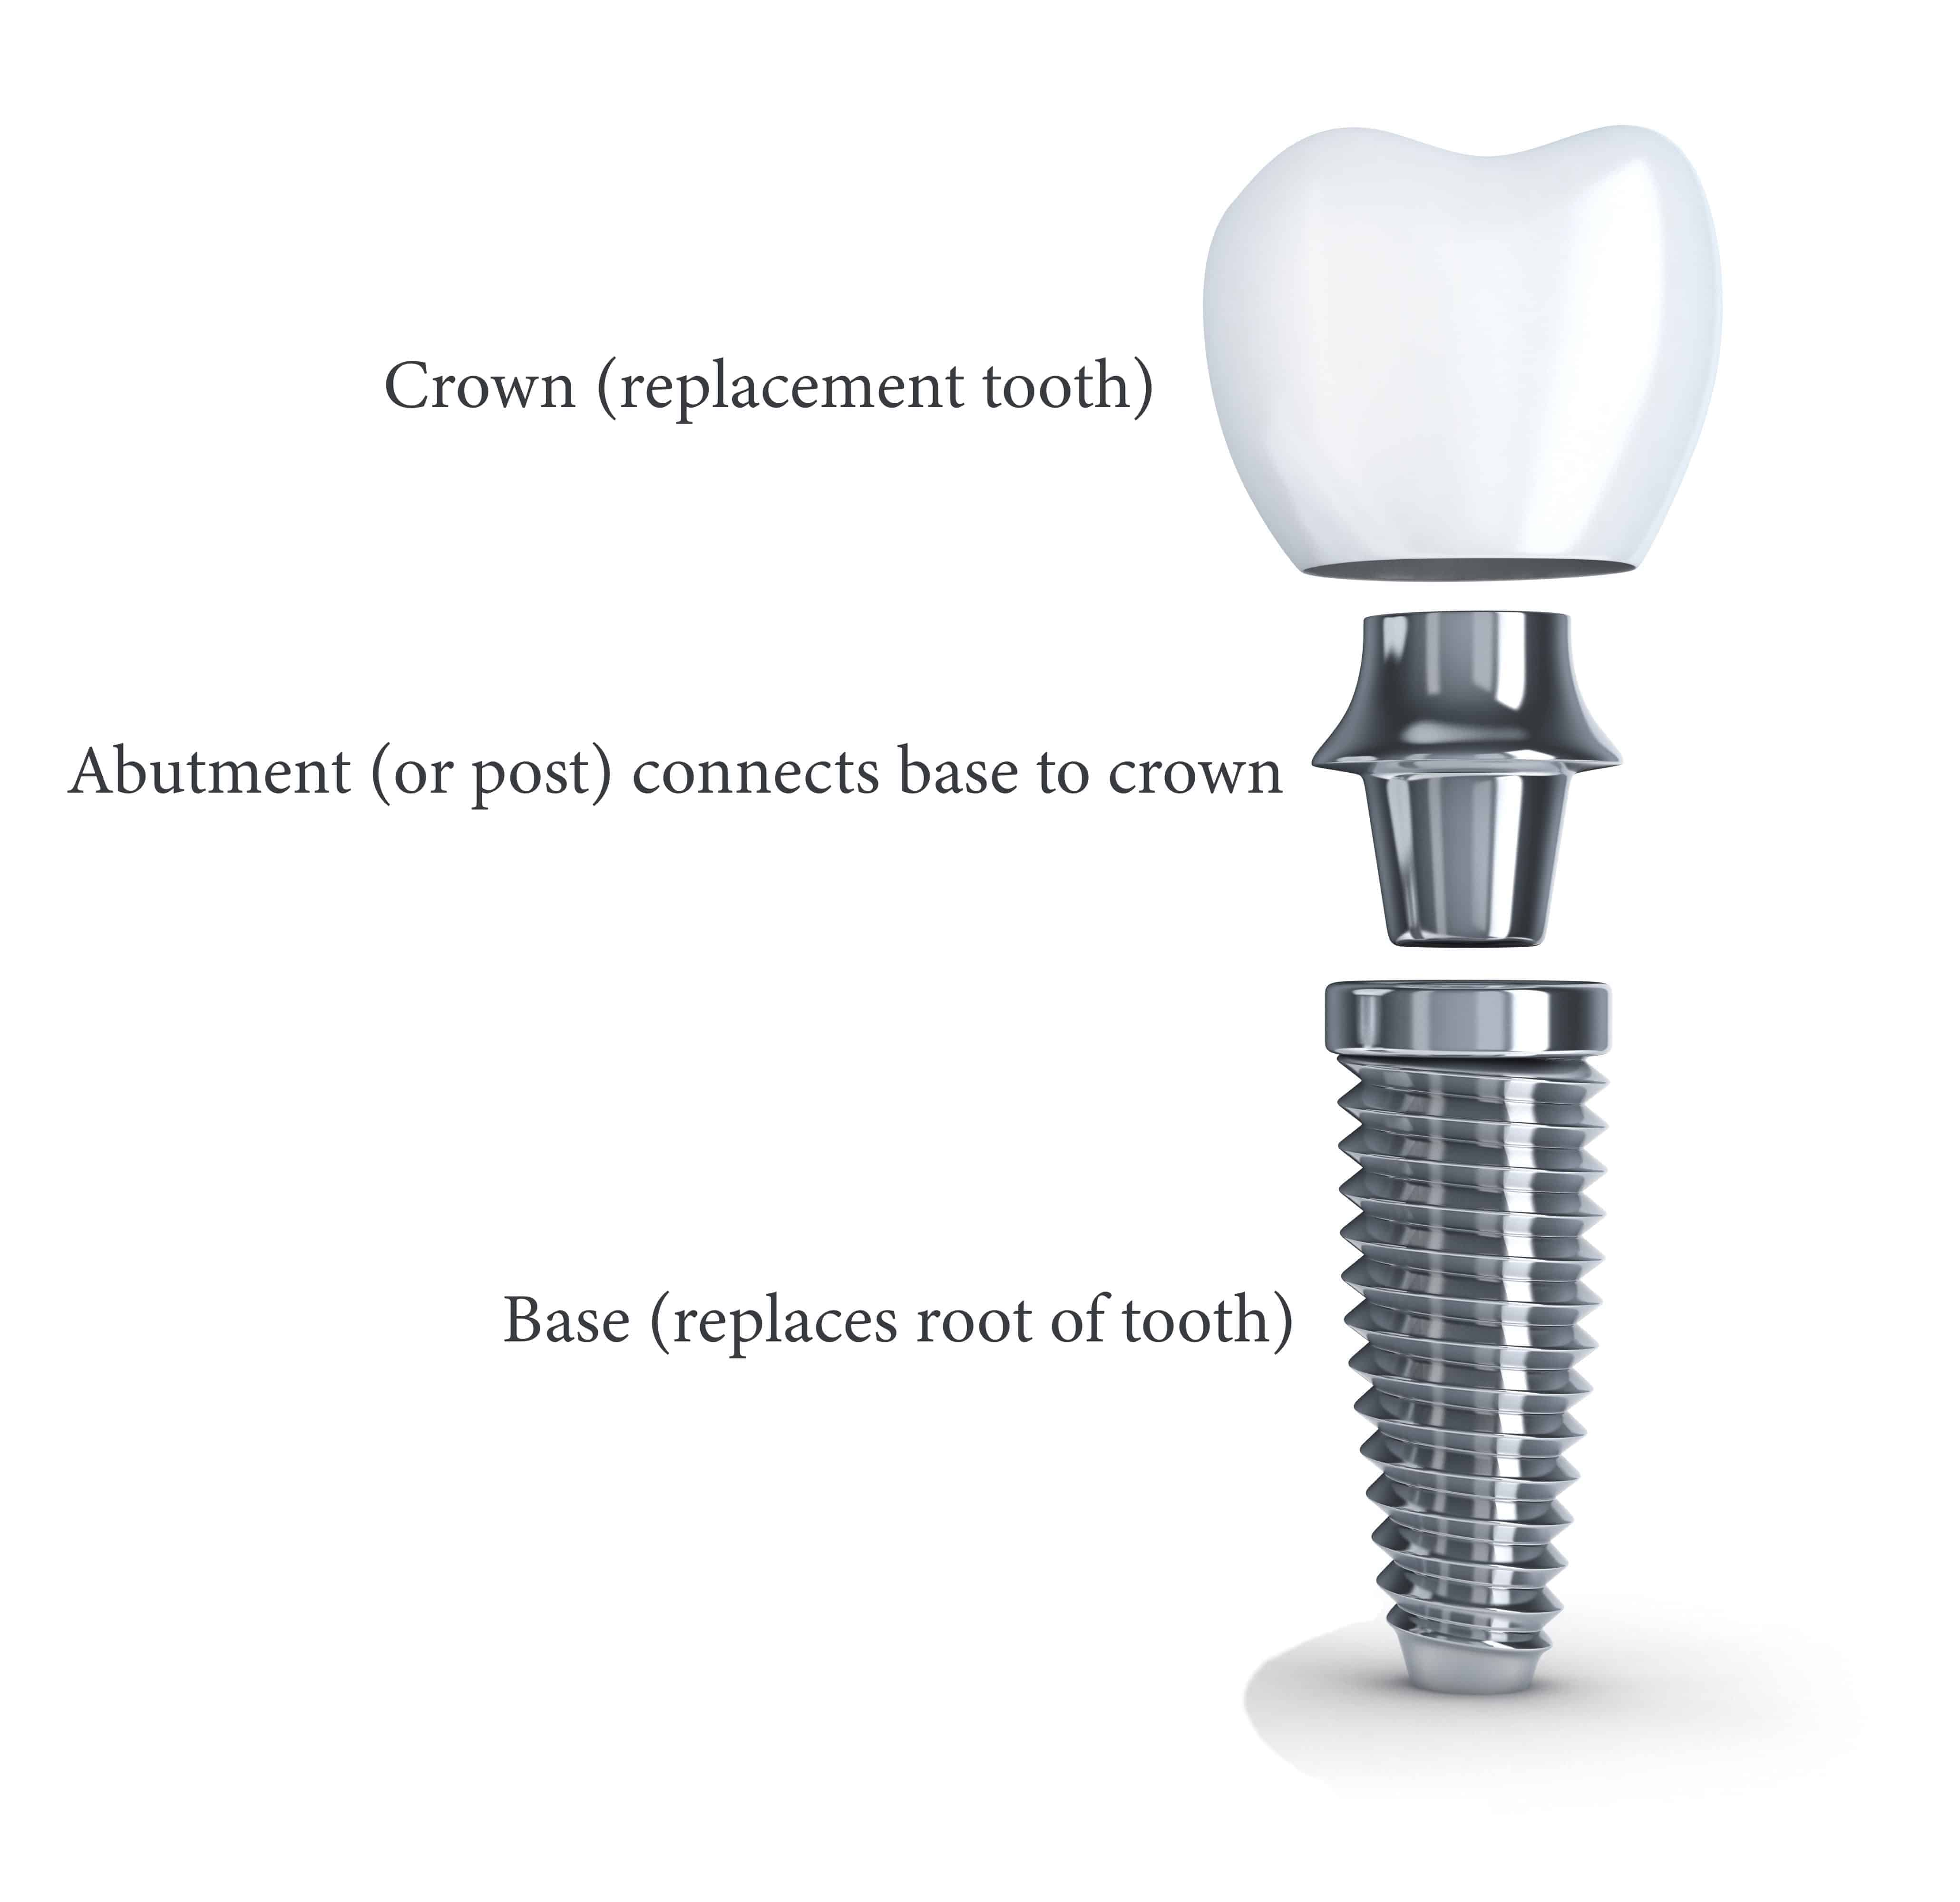 carlsbad shores dentistry tooth implant explainer image